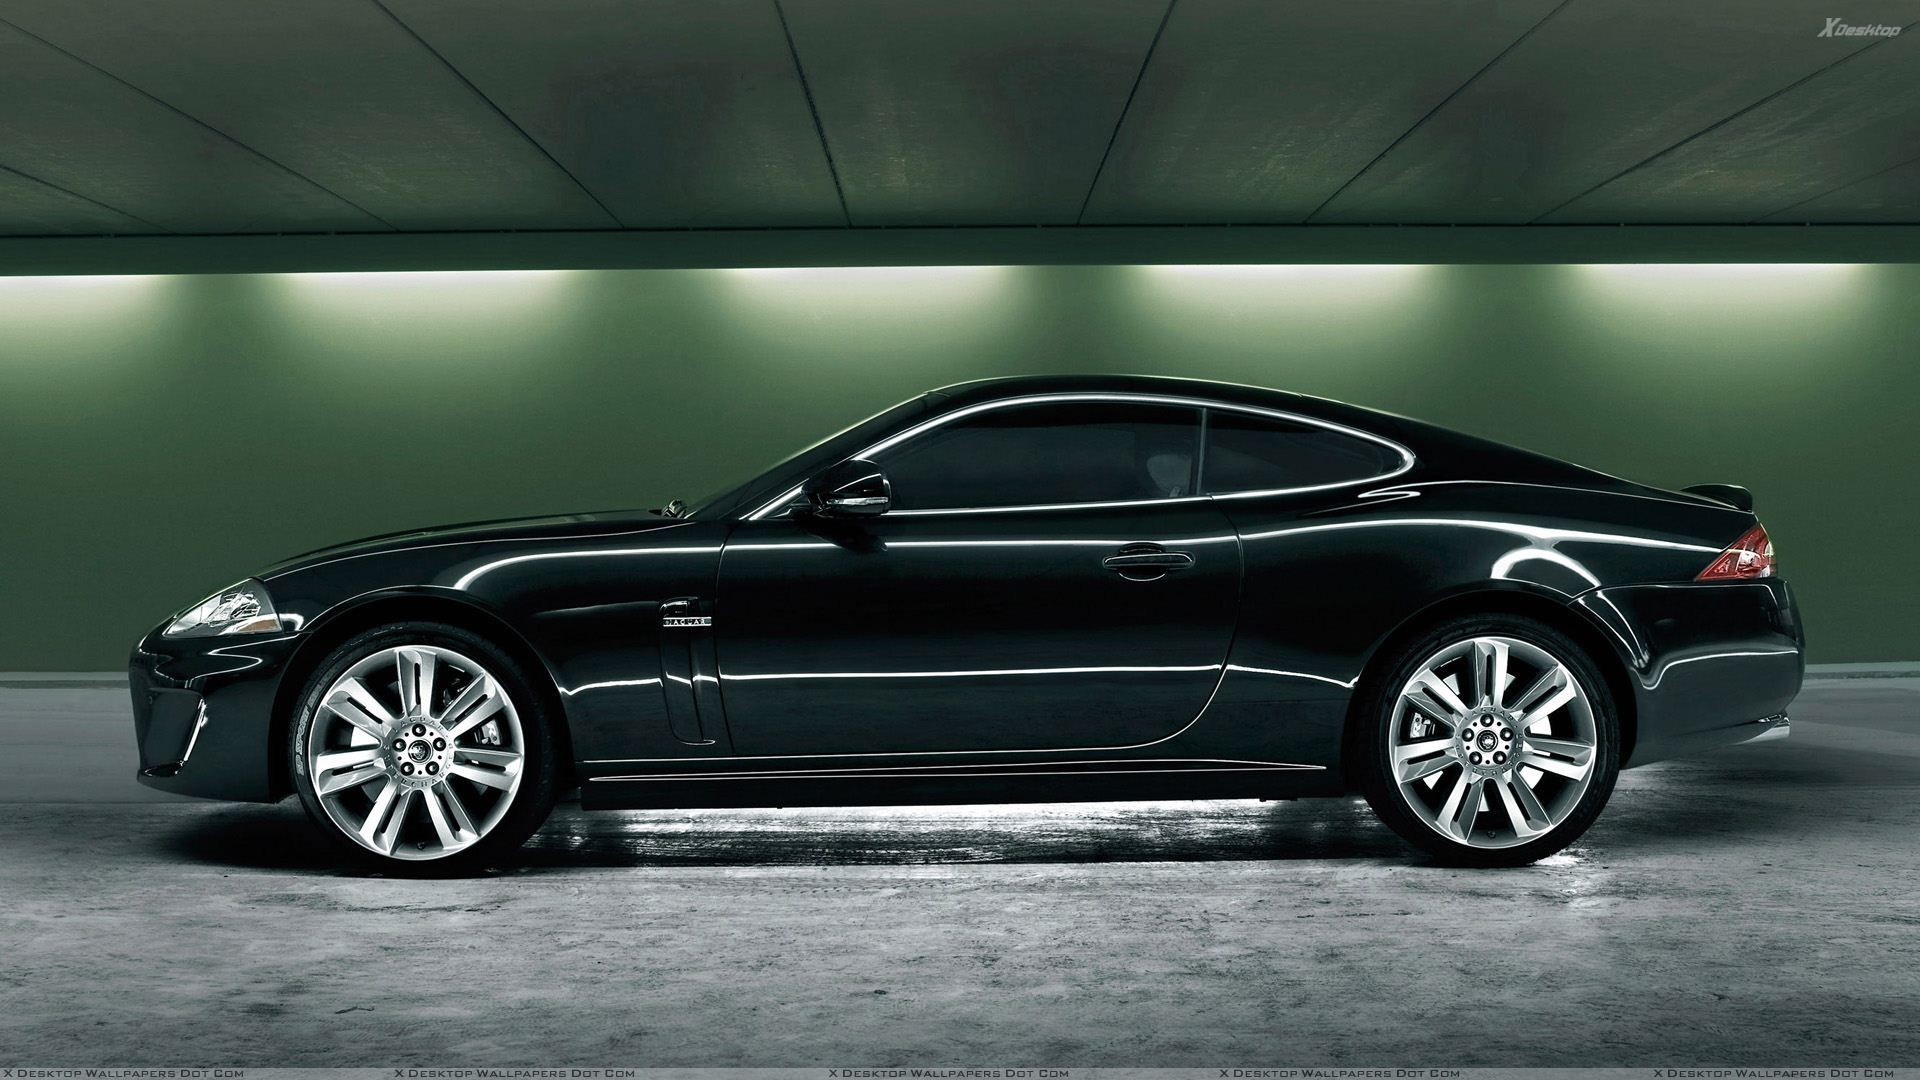 Jaguar xkr picture from our gallery which contains 21 high resolution images of the model